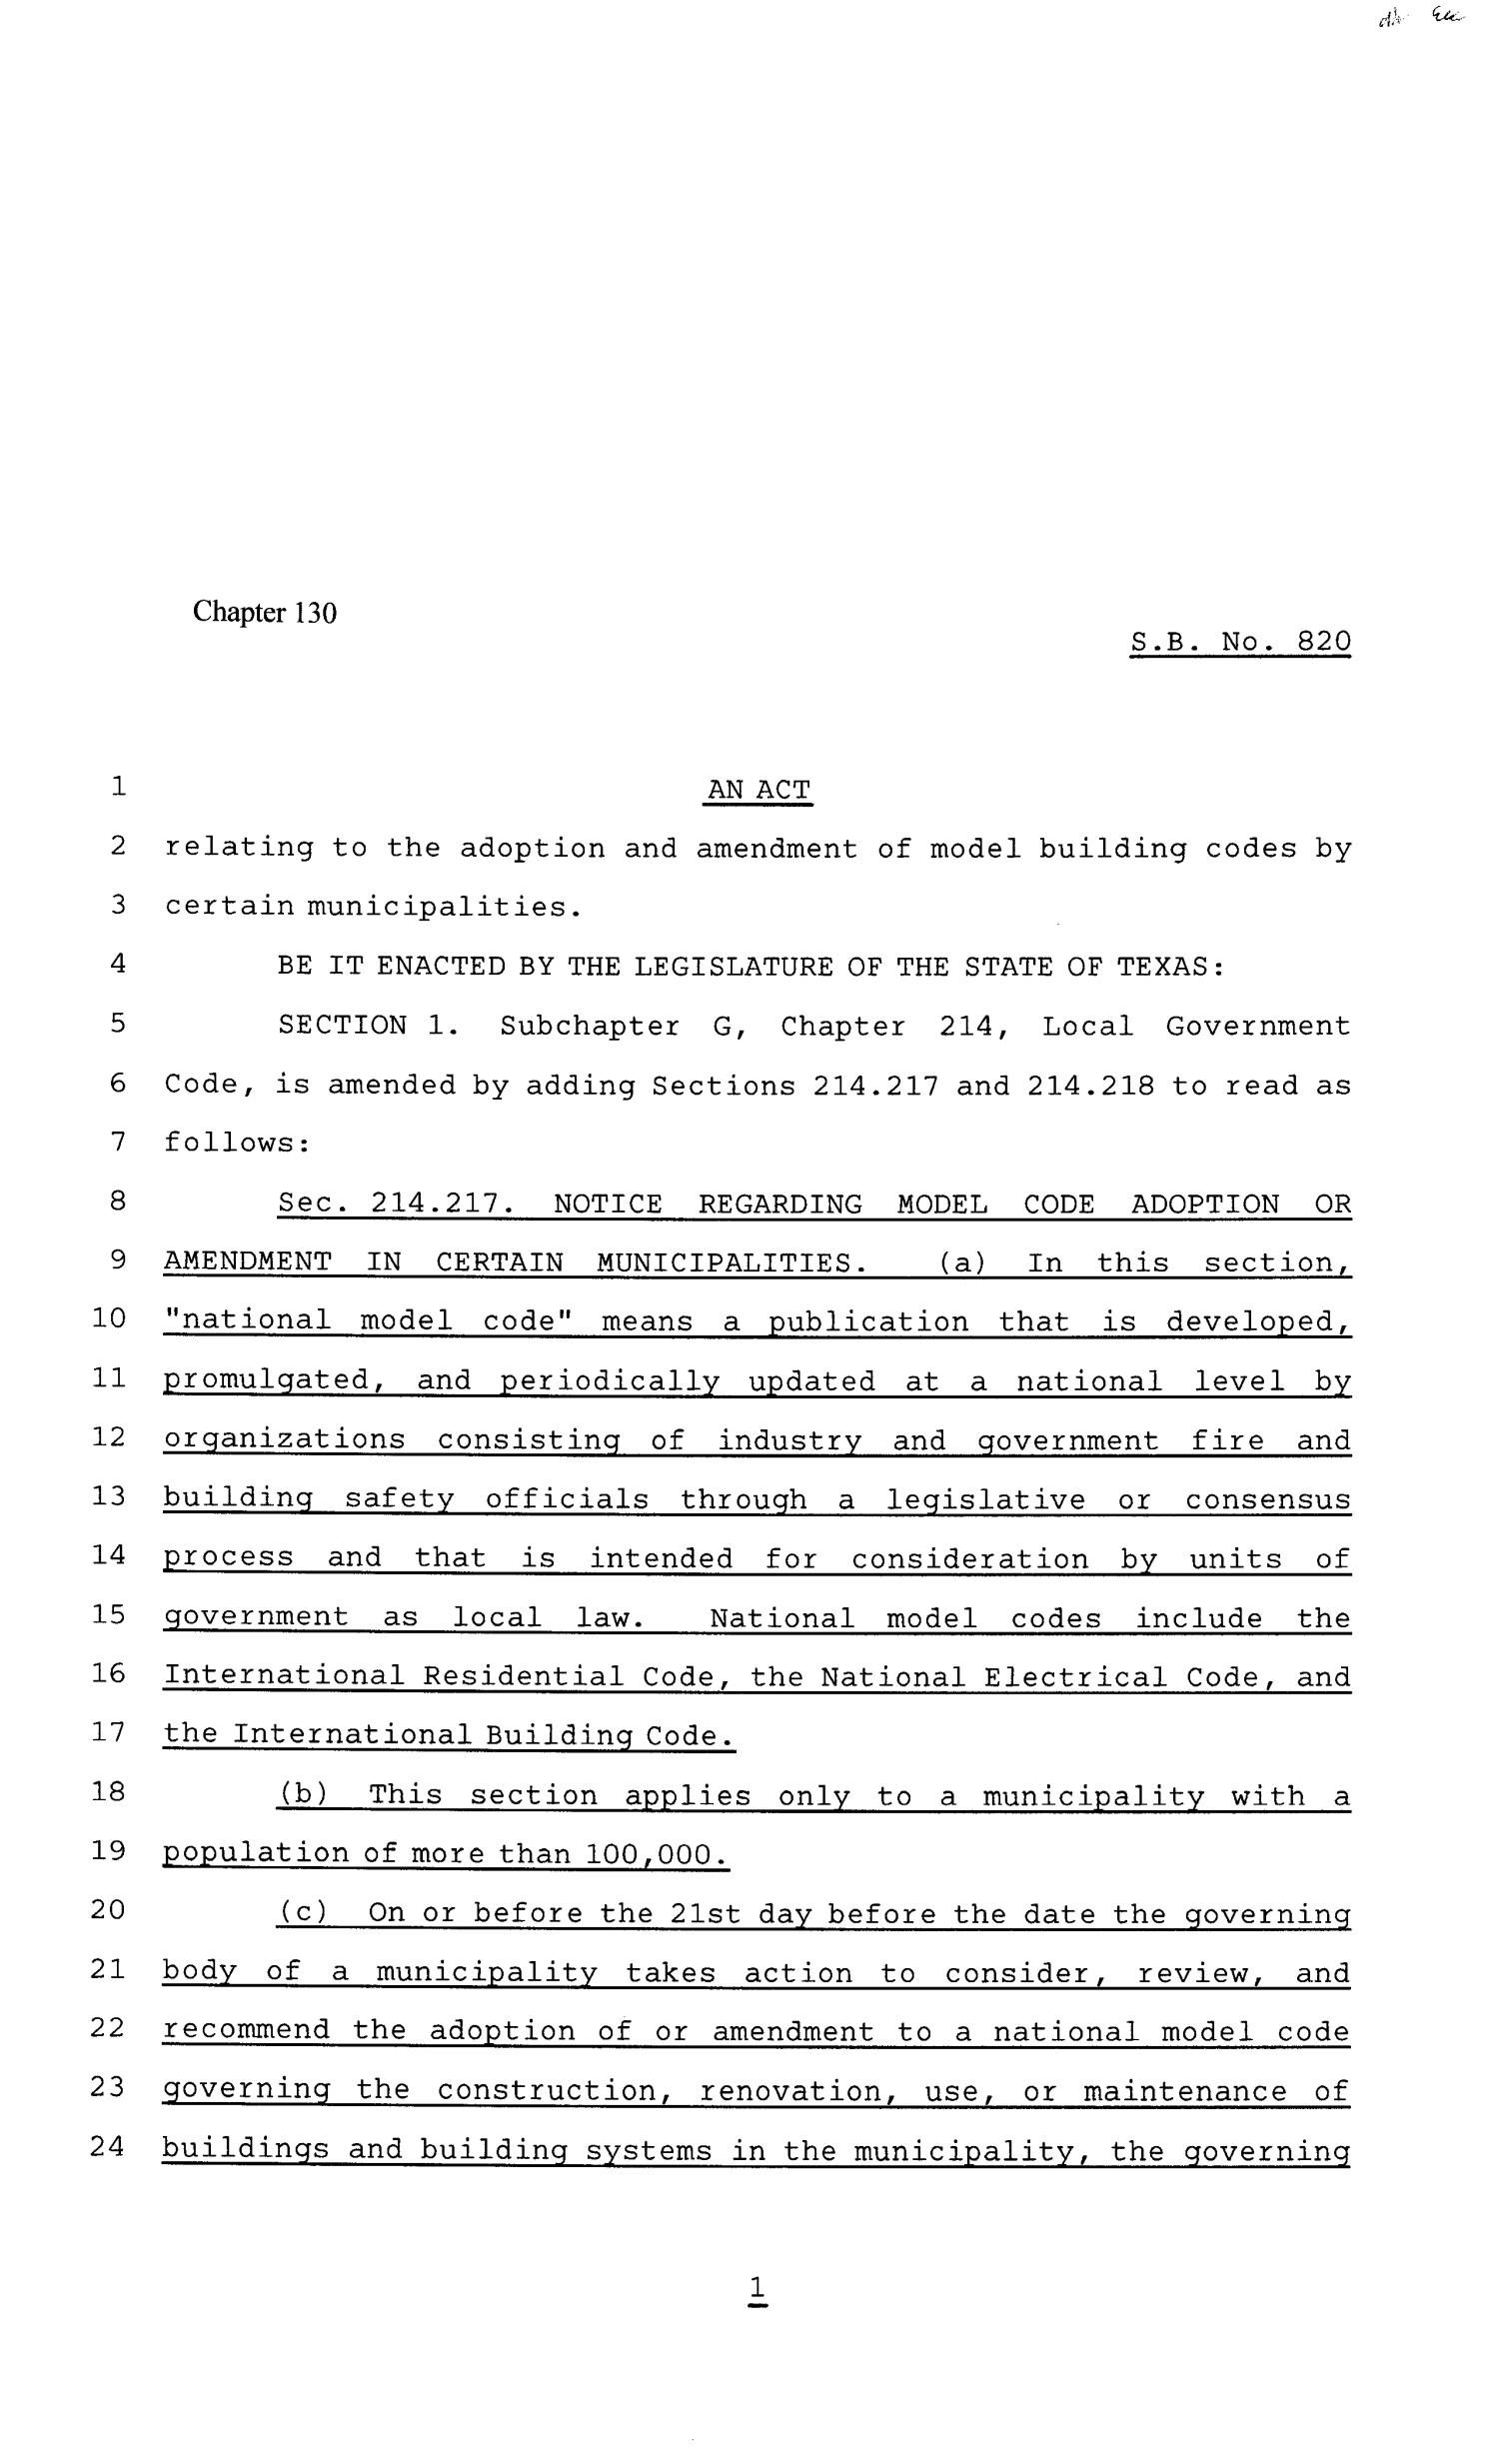 81st Texas Legislature, Senate Bill 820, Chapter 130                                                                                                      [Sequence #]: 1 of 4